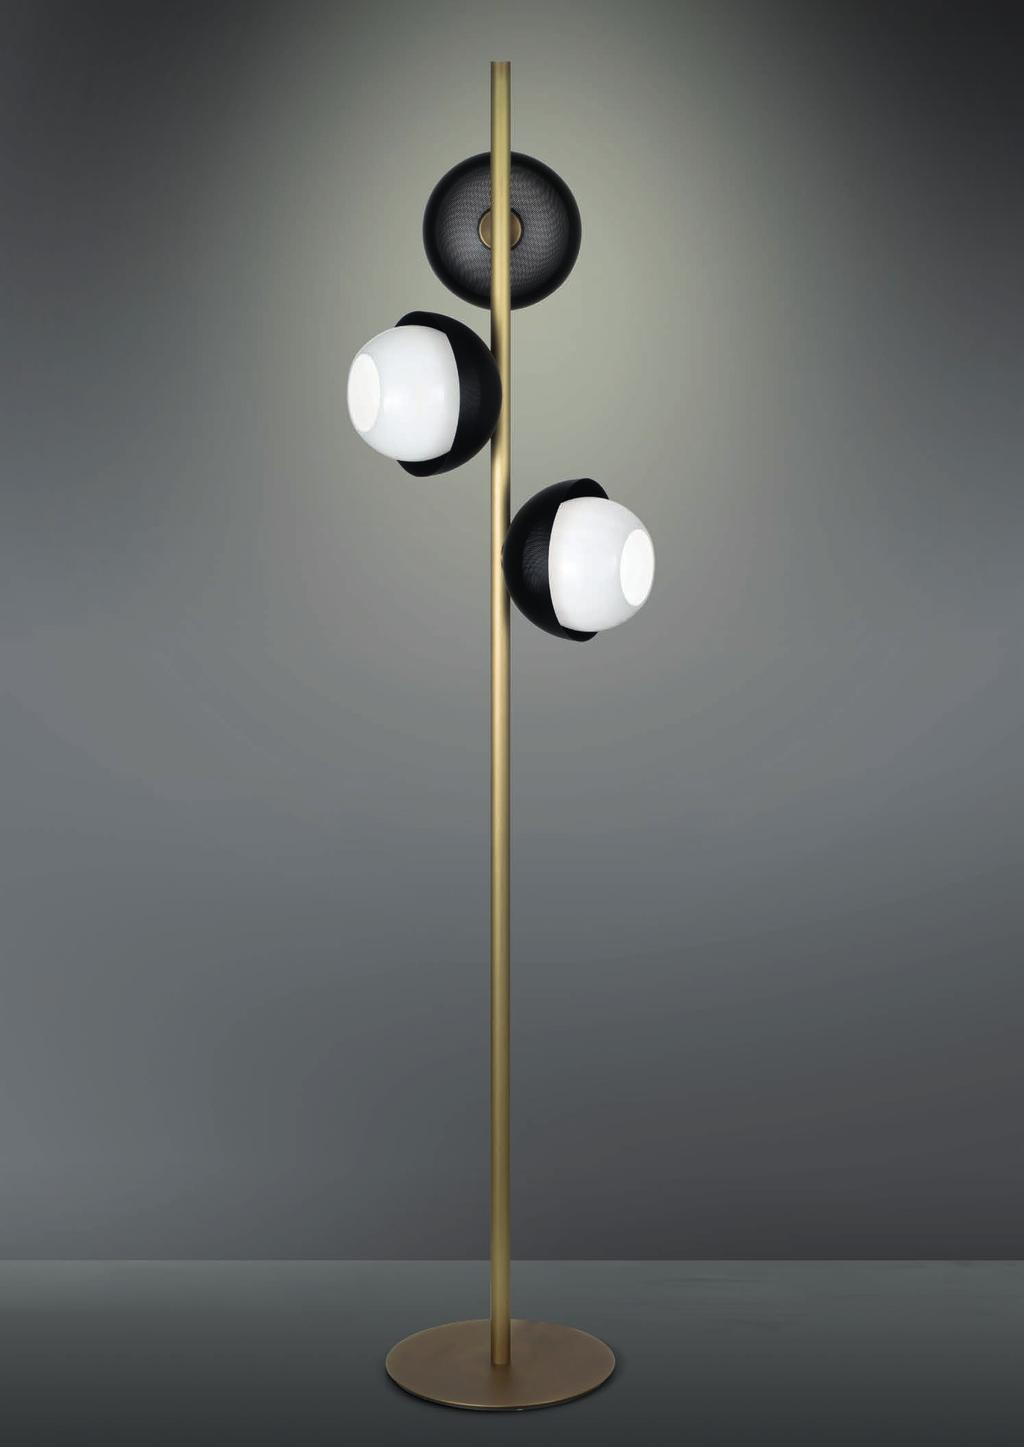 URBAN FLOOR 164cm-64 5 Ø 38cm-15 Floor lamp with diffuse light and white, tobacco or smoke Murano blown glass diffusers.